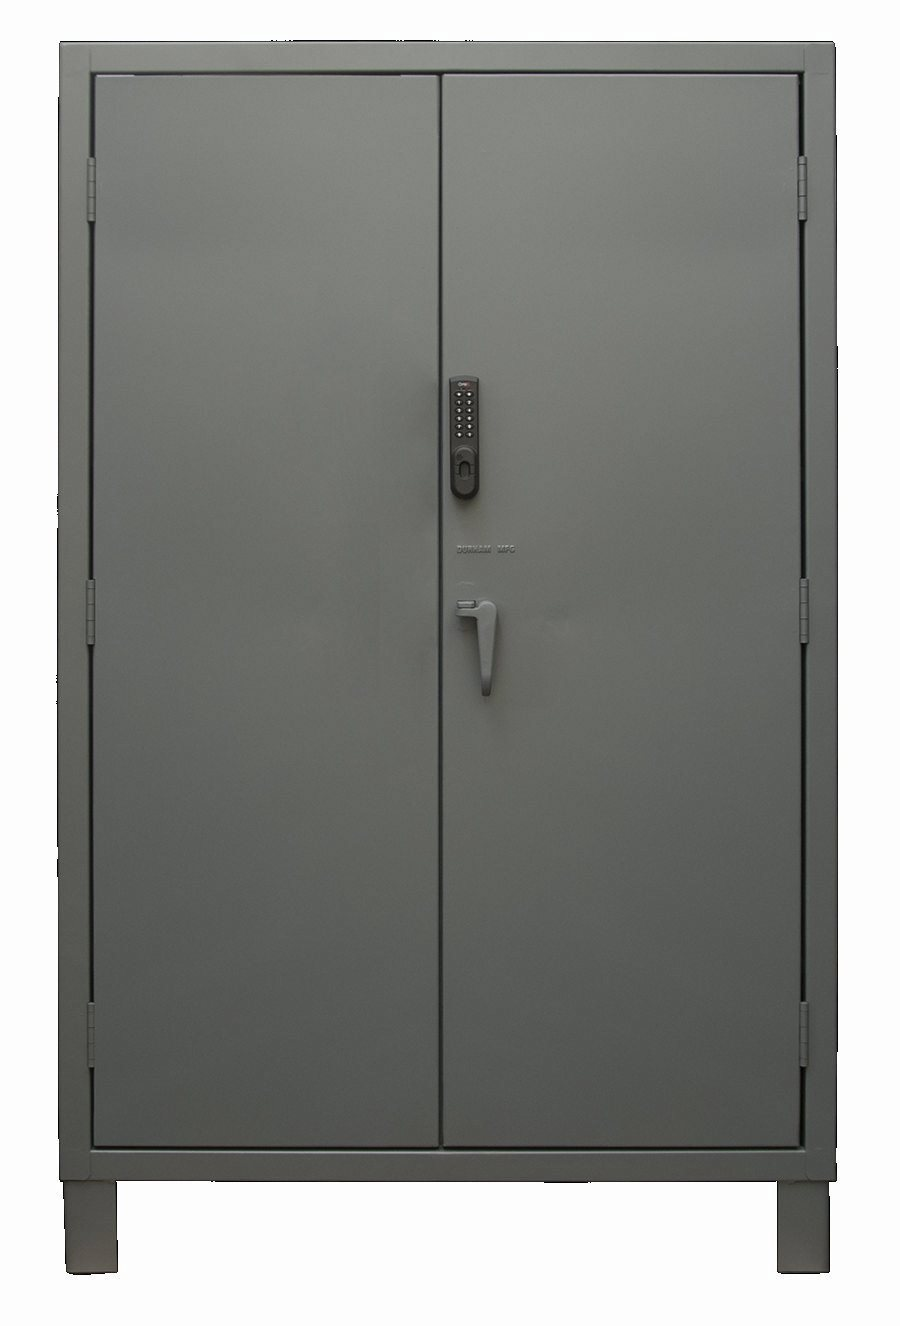 48 in wide electronic access cabinet solid door